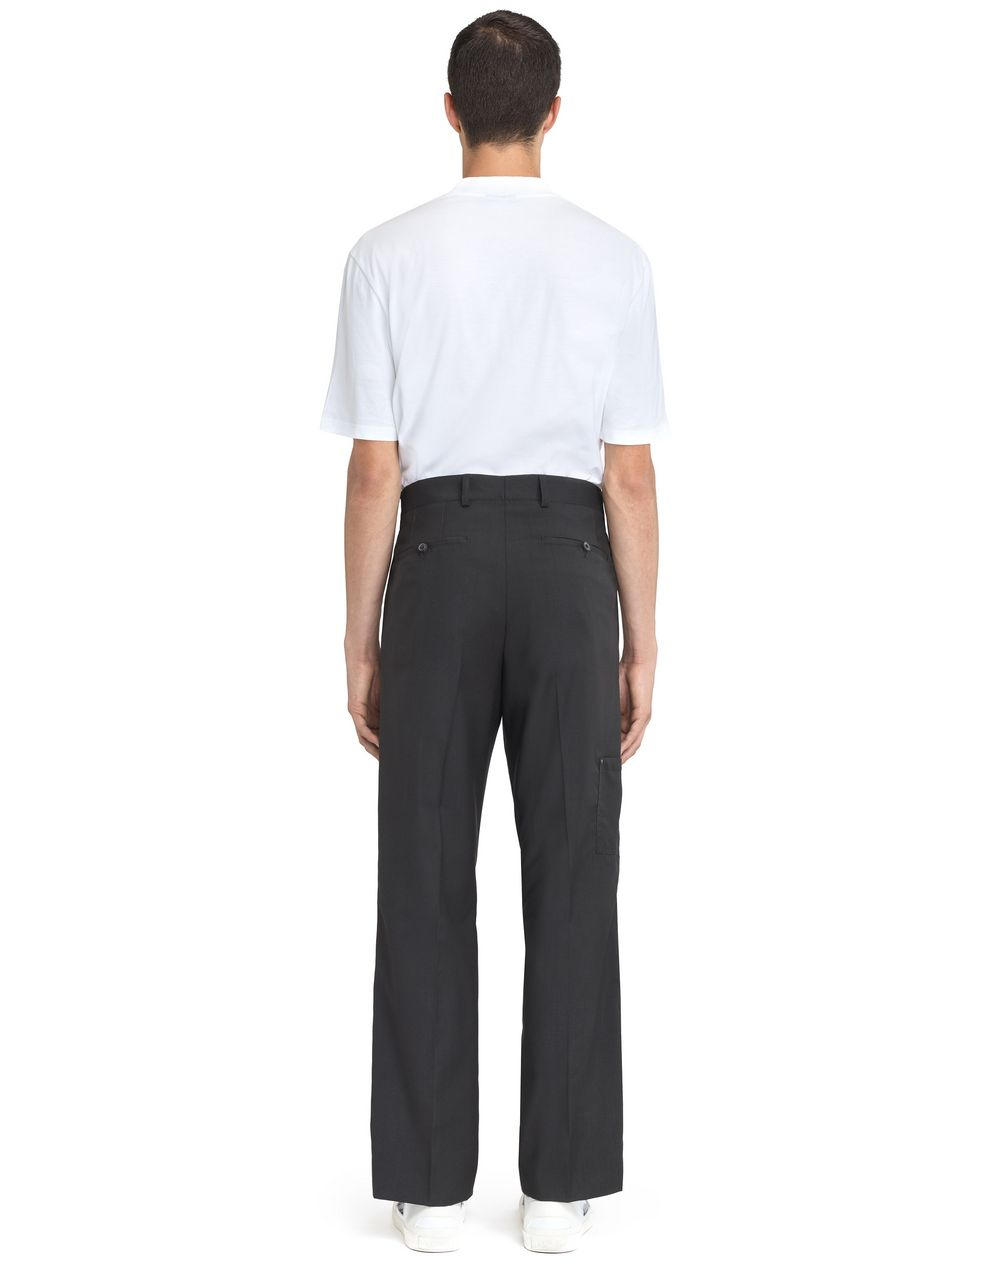 STRAIGHT-FIT TROUSERS WITH RIVETS - Lanvin